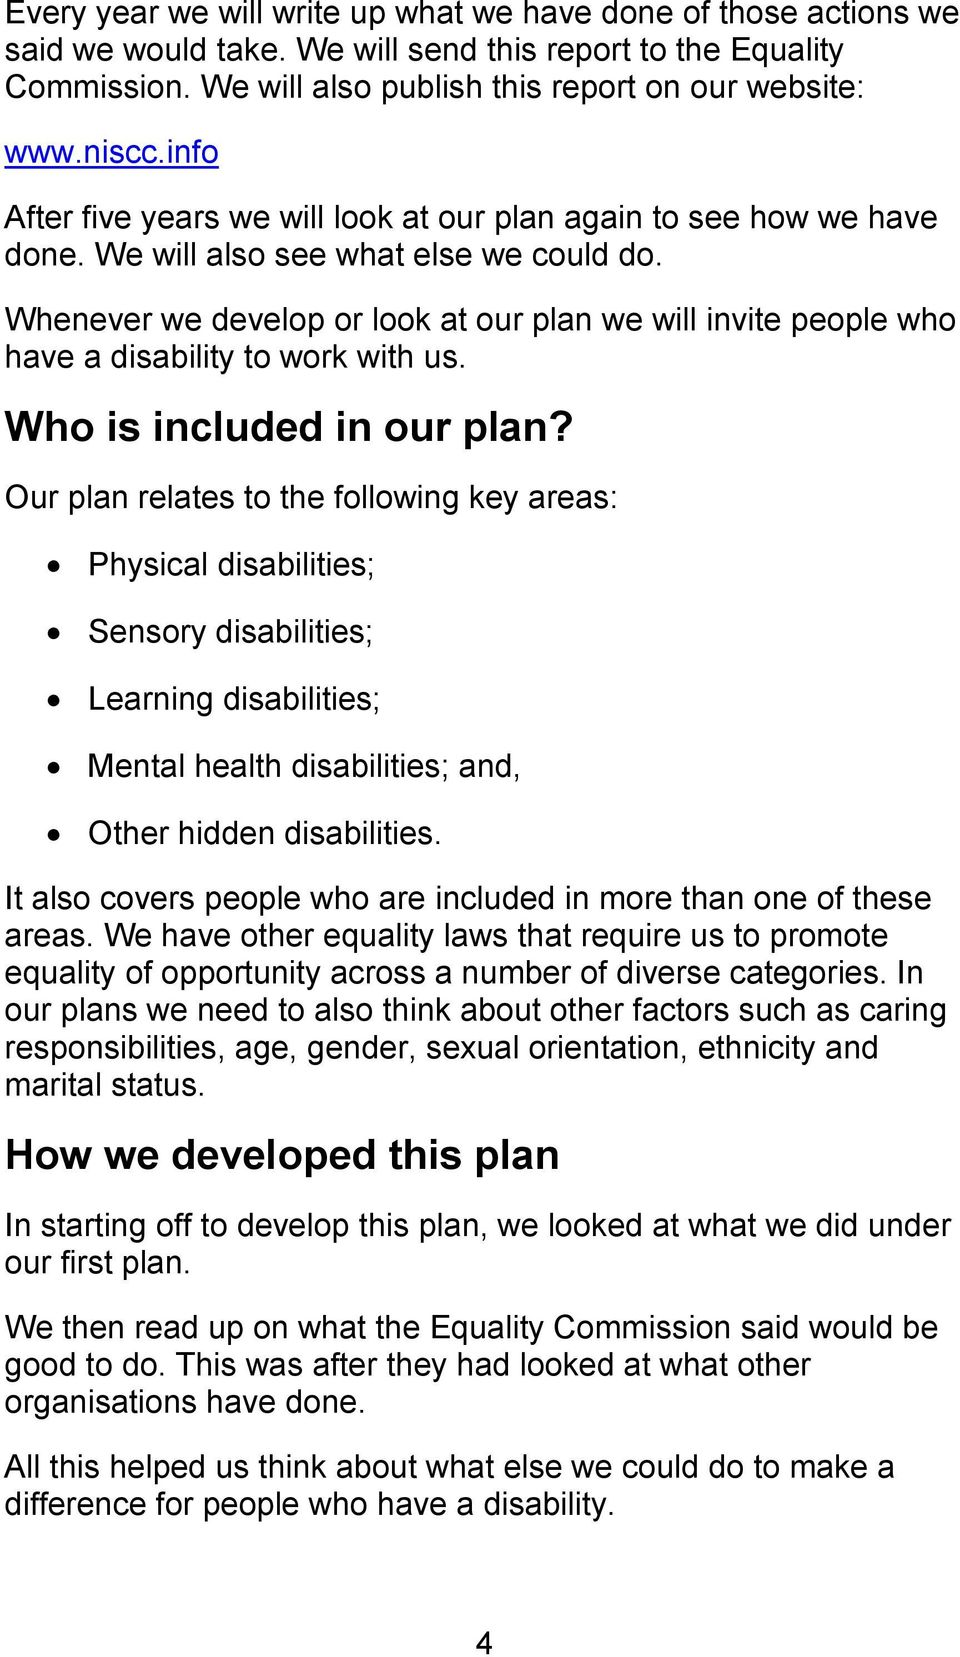 Whenever we develop or look at our plan we will invite people who have a disability to work with us. Who is included in our plan?